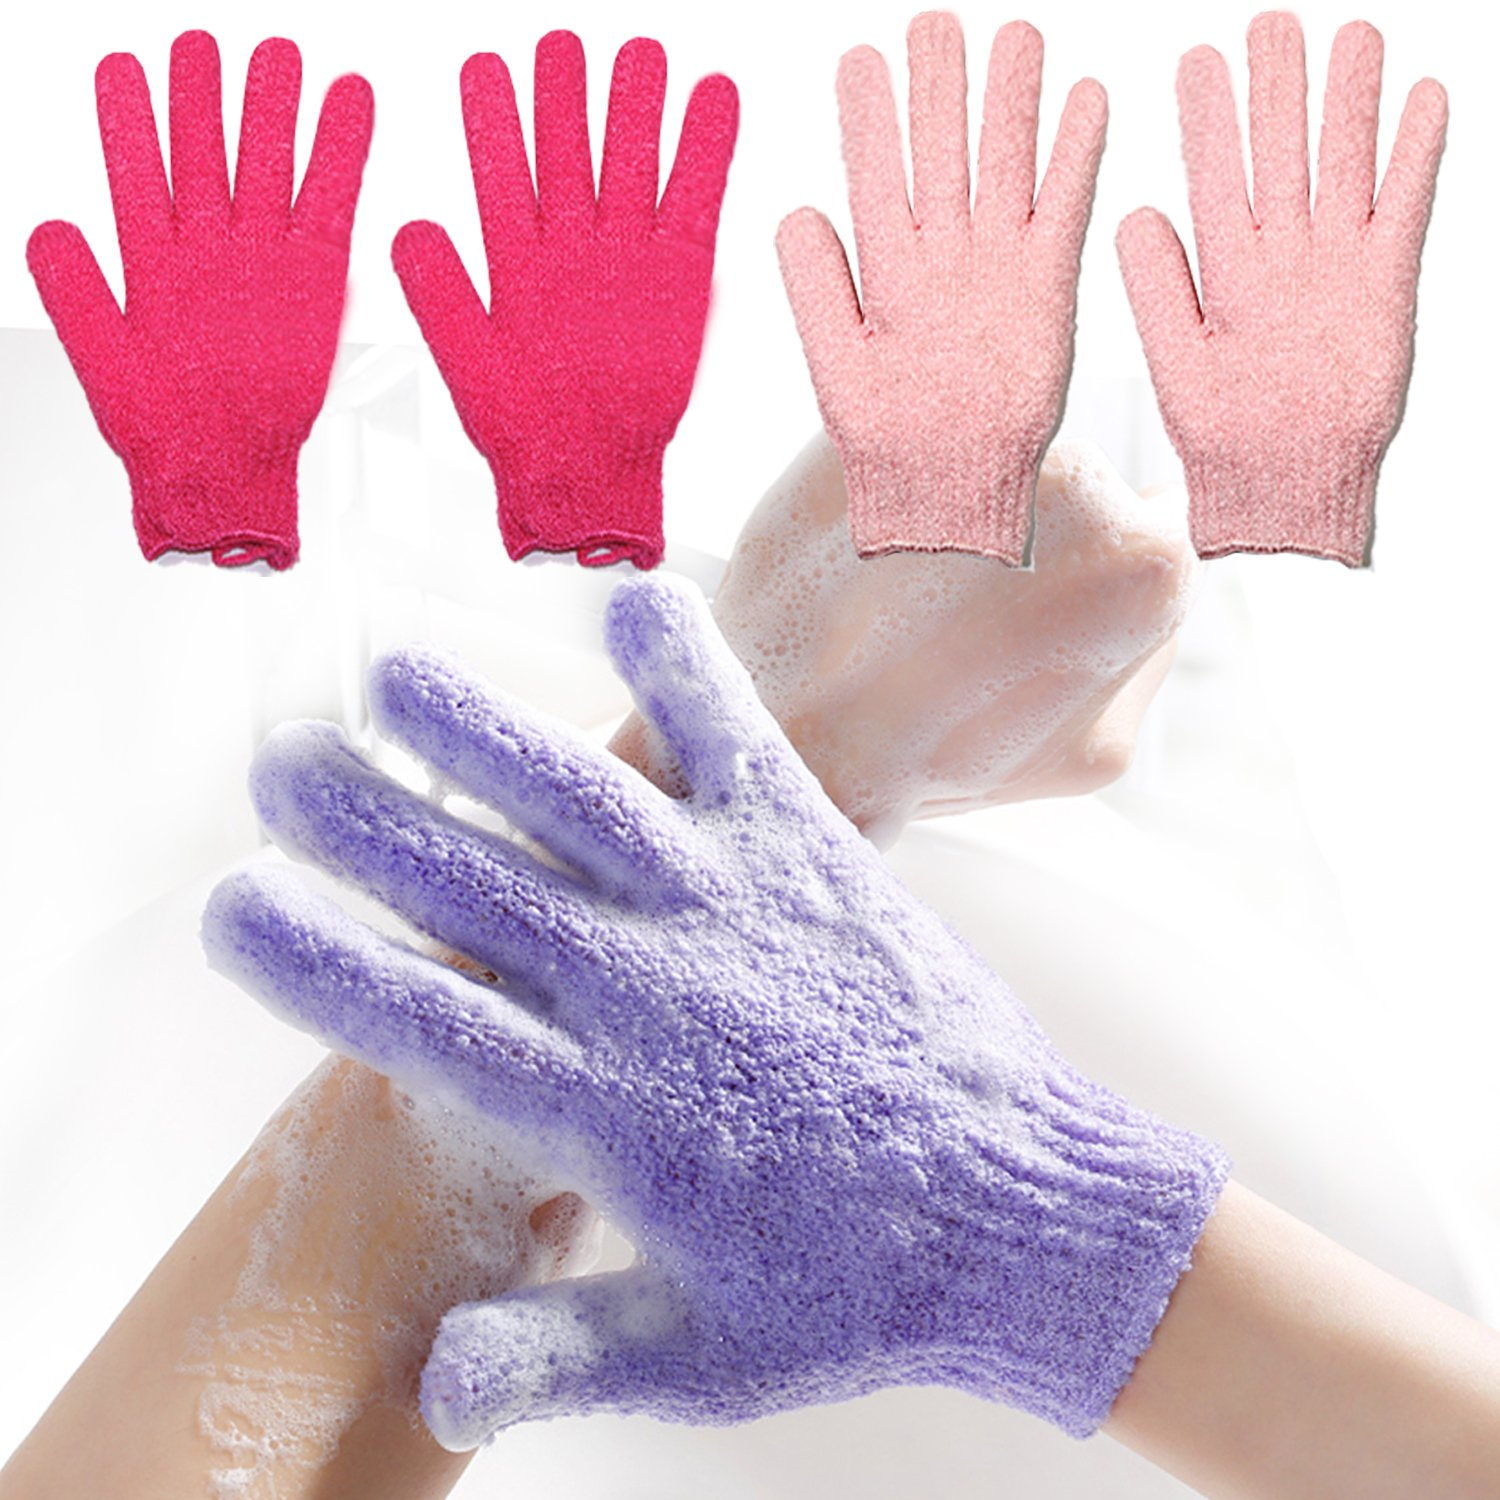 2 Pair Exfoliating Body Gloves Loofah Skin Massage Sponge korean Towel for Cloth Shower Skin Cell Pro Microfiber Body Spa Glove Dry Skin Brush Scrub (red&pink) niki28